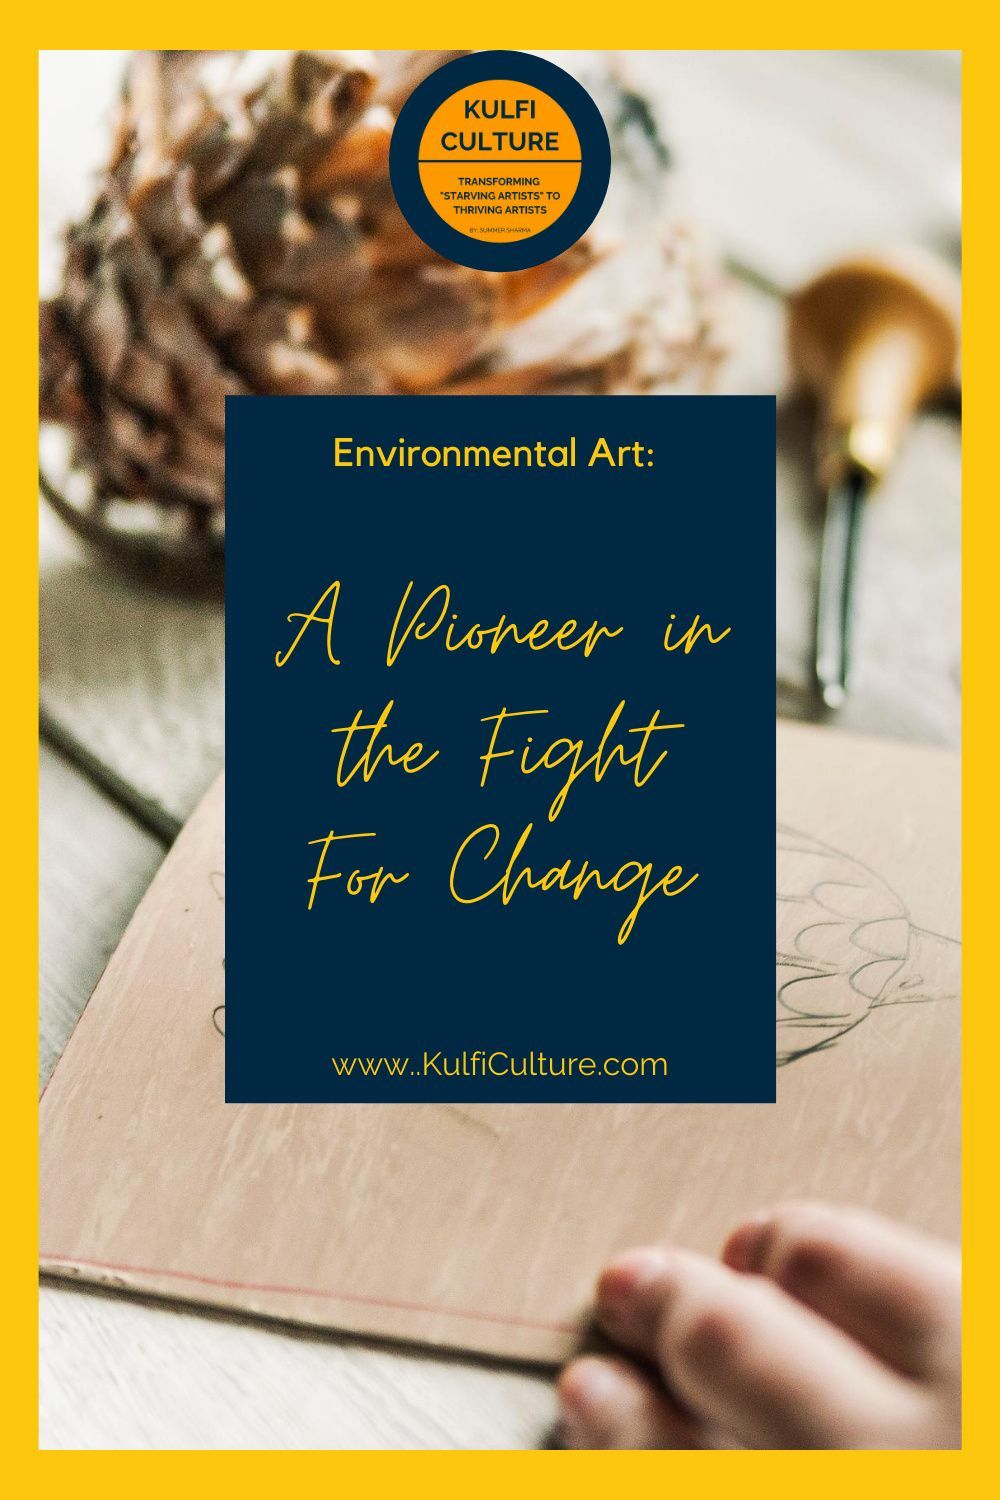 Environmental Art: A Pioneer in the Fight for Change   Jessica Ganim, Guest Blogger for Kulfi Culture   Art is culture. It brings people together. So creative entrepreneurs have the unique opportunity to marry science and culture through their businesses. Discover how one incident in Scotland started the fight for environmental change.  #creativeentrepreneur #storyteller